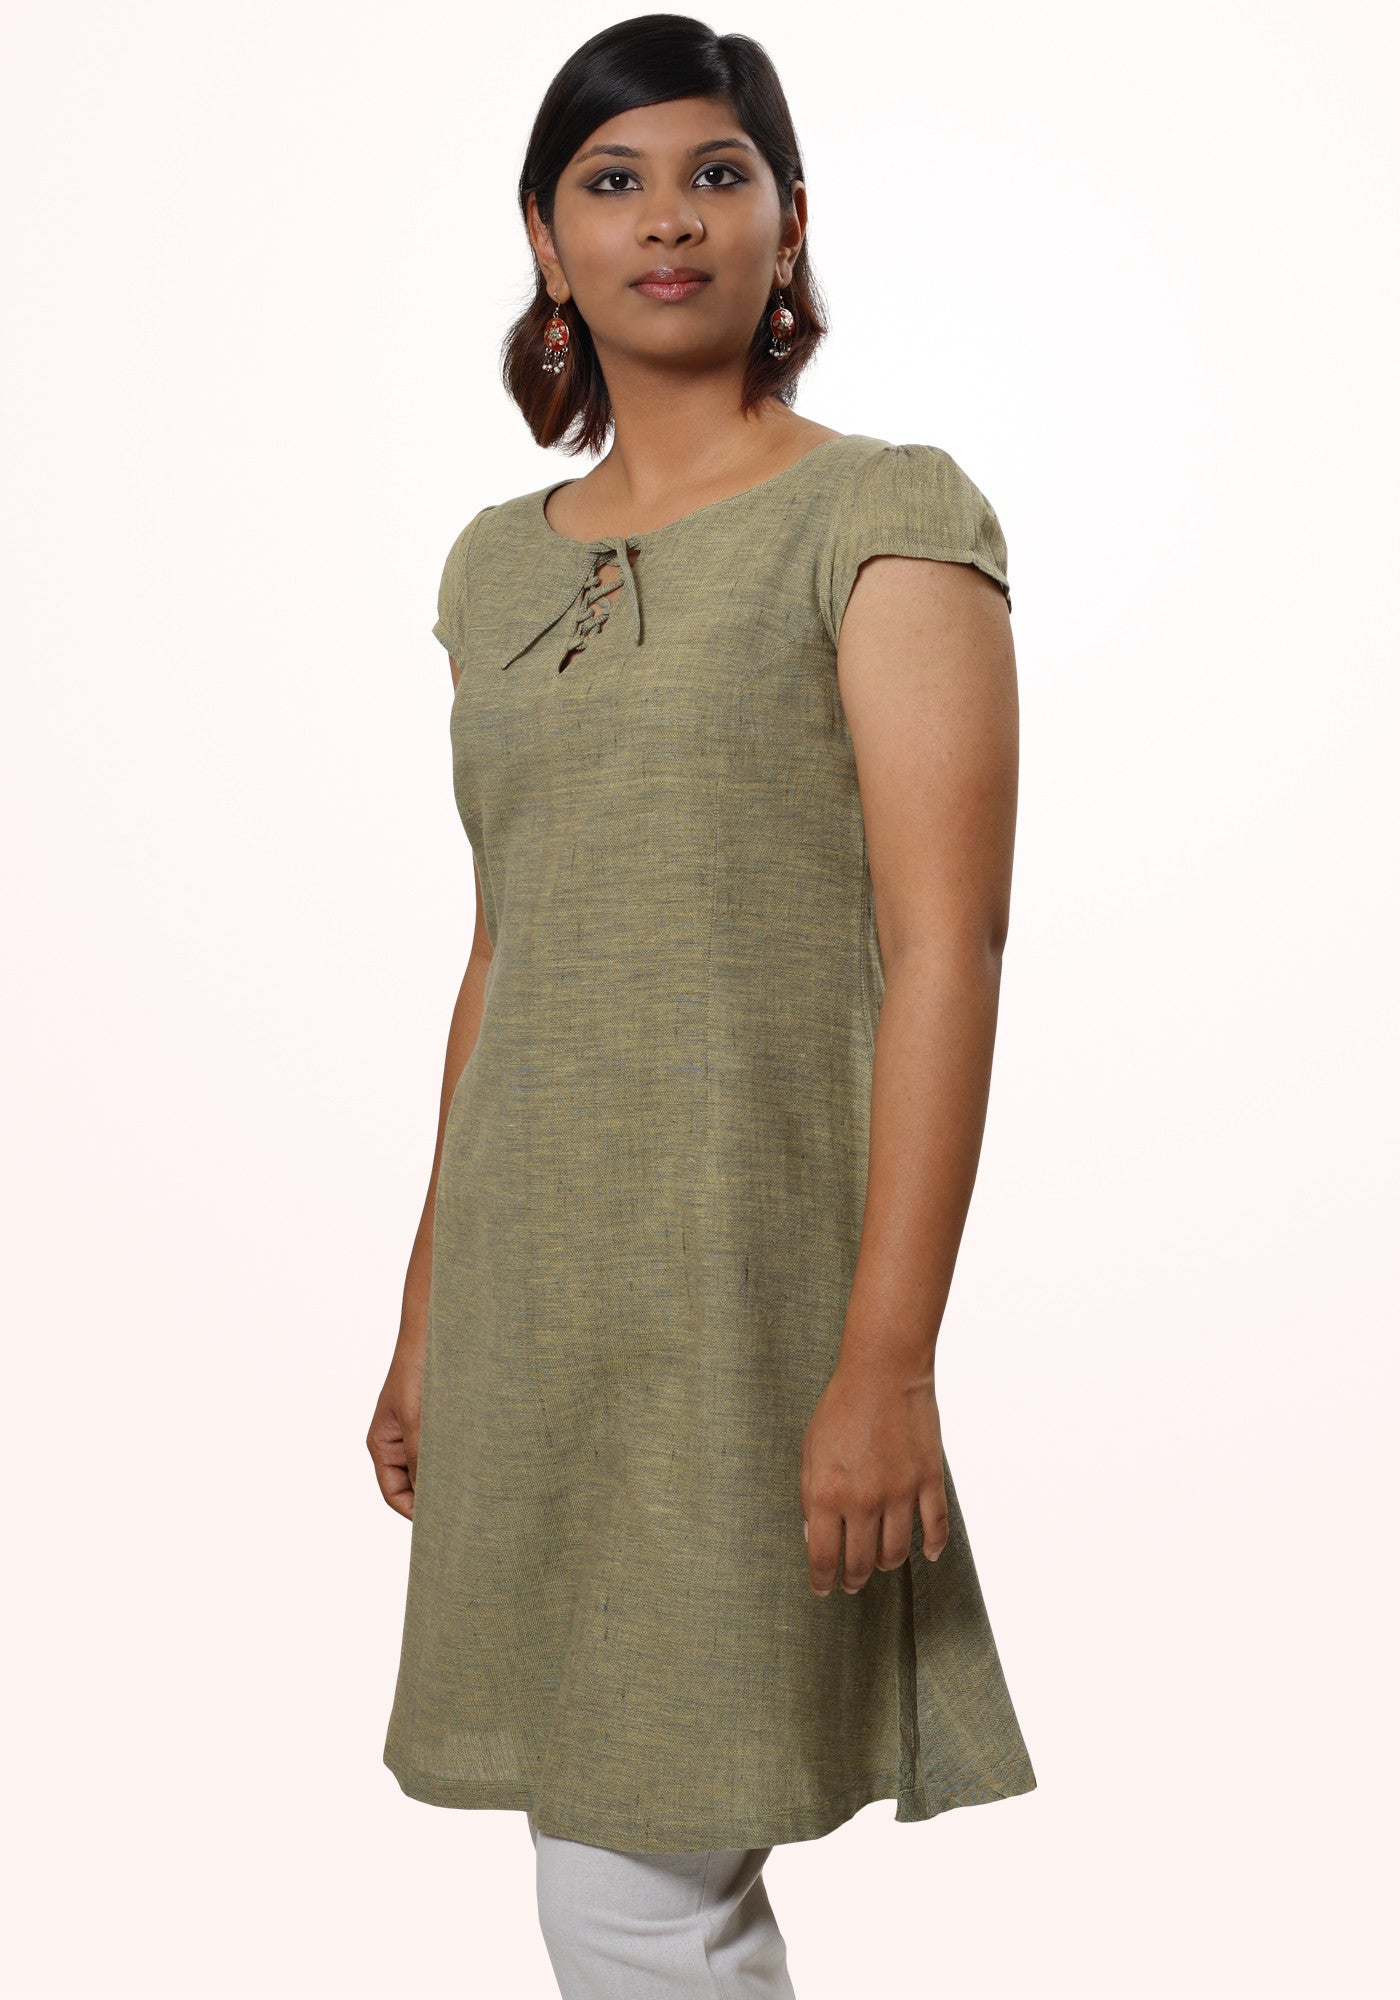 V Neck Long Tunic - MINC ecofashion